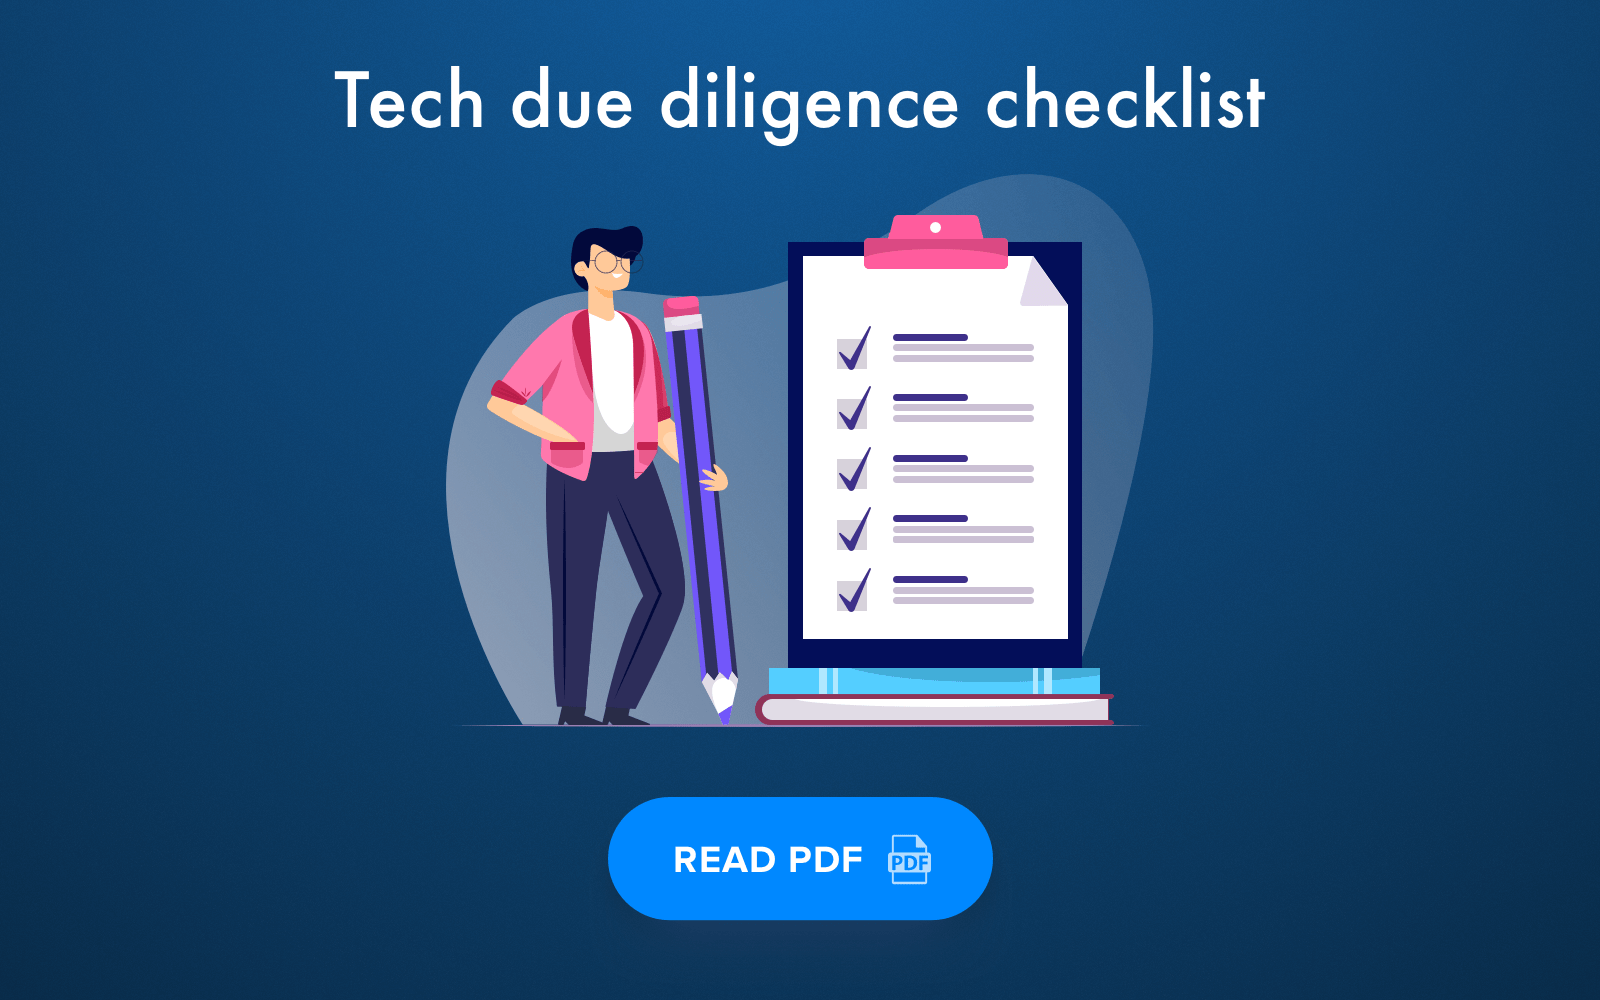 Tech due diligence checklist